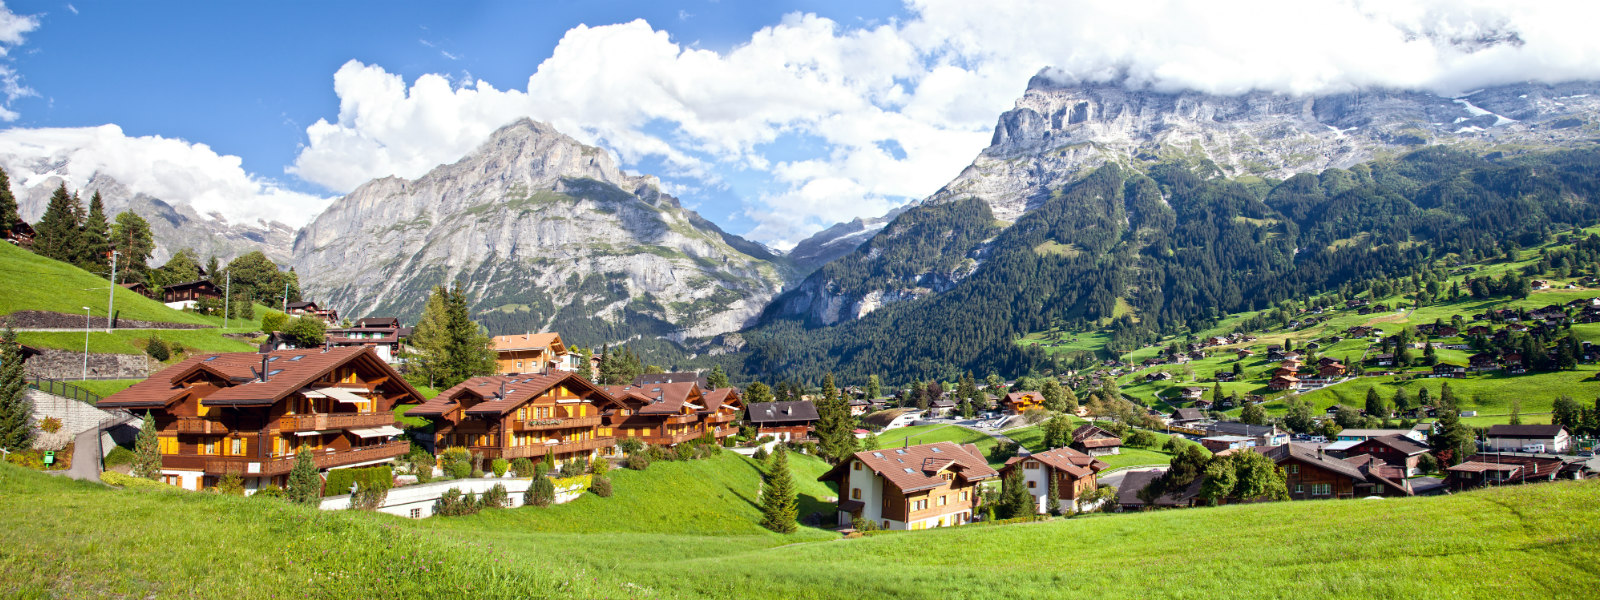 Cheap Plane Train Coach And Bus Tickets To Grindelwald